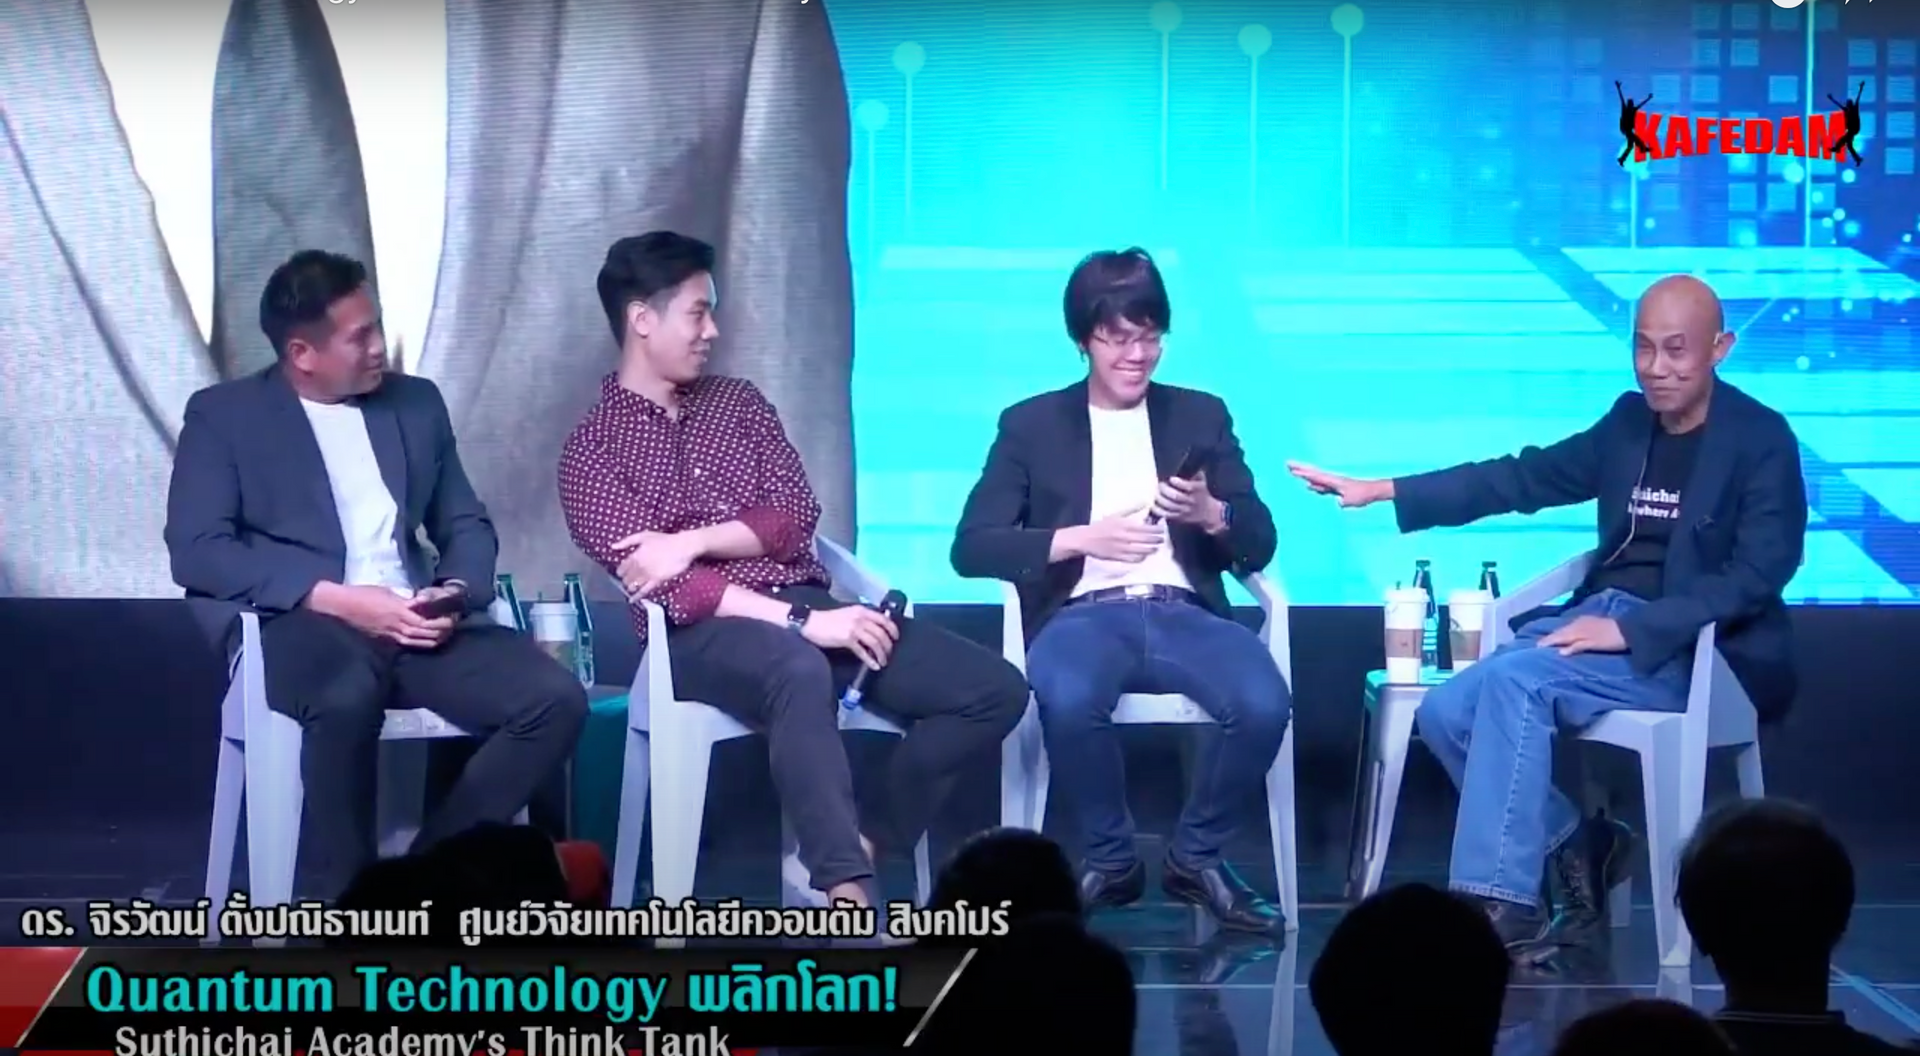 QTFT at Suthichai Live on quantum technologies and their impacts on the society.